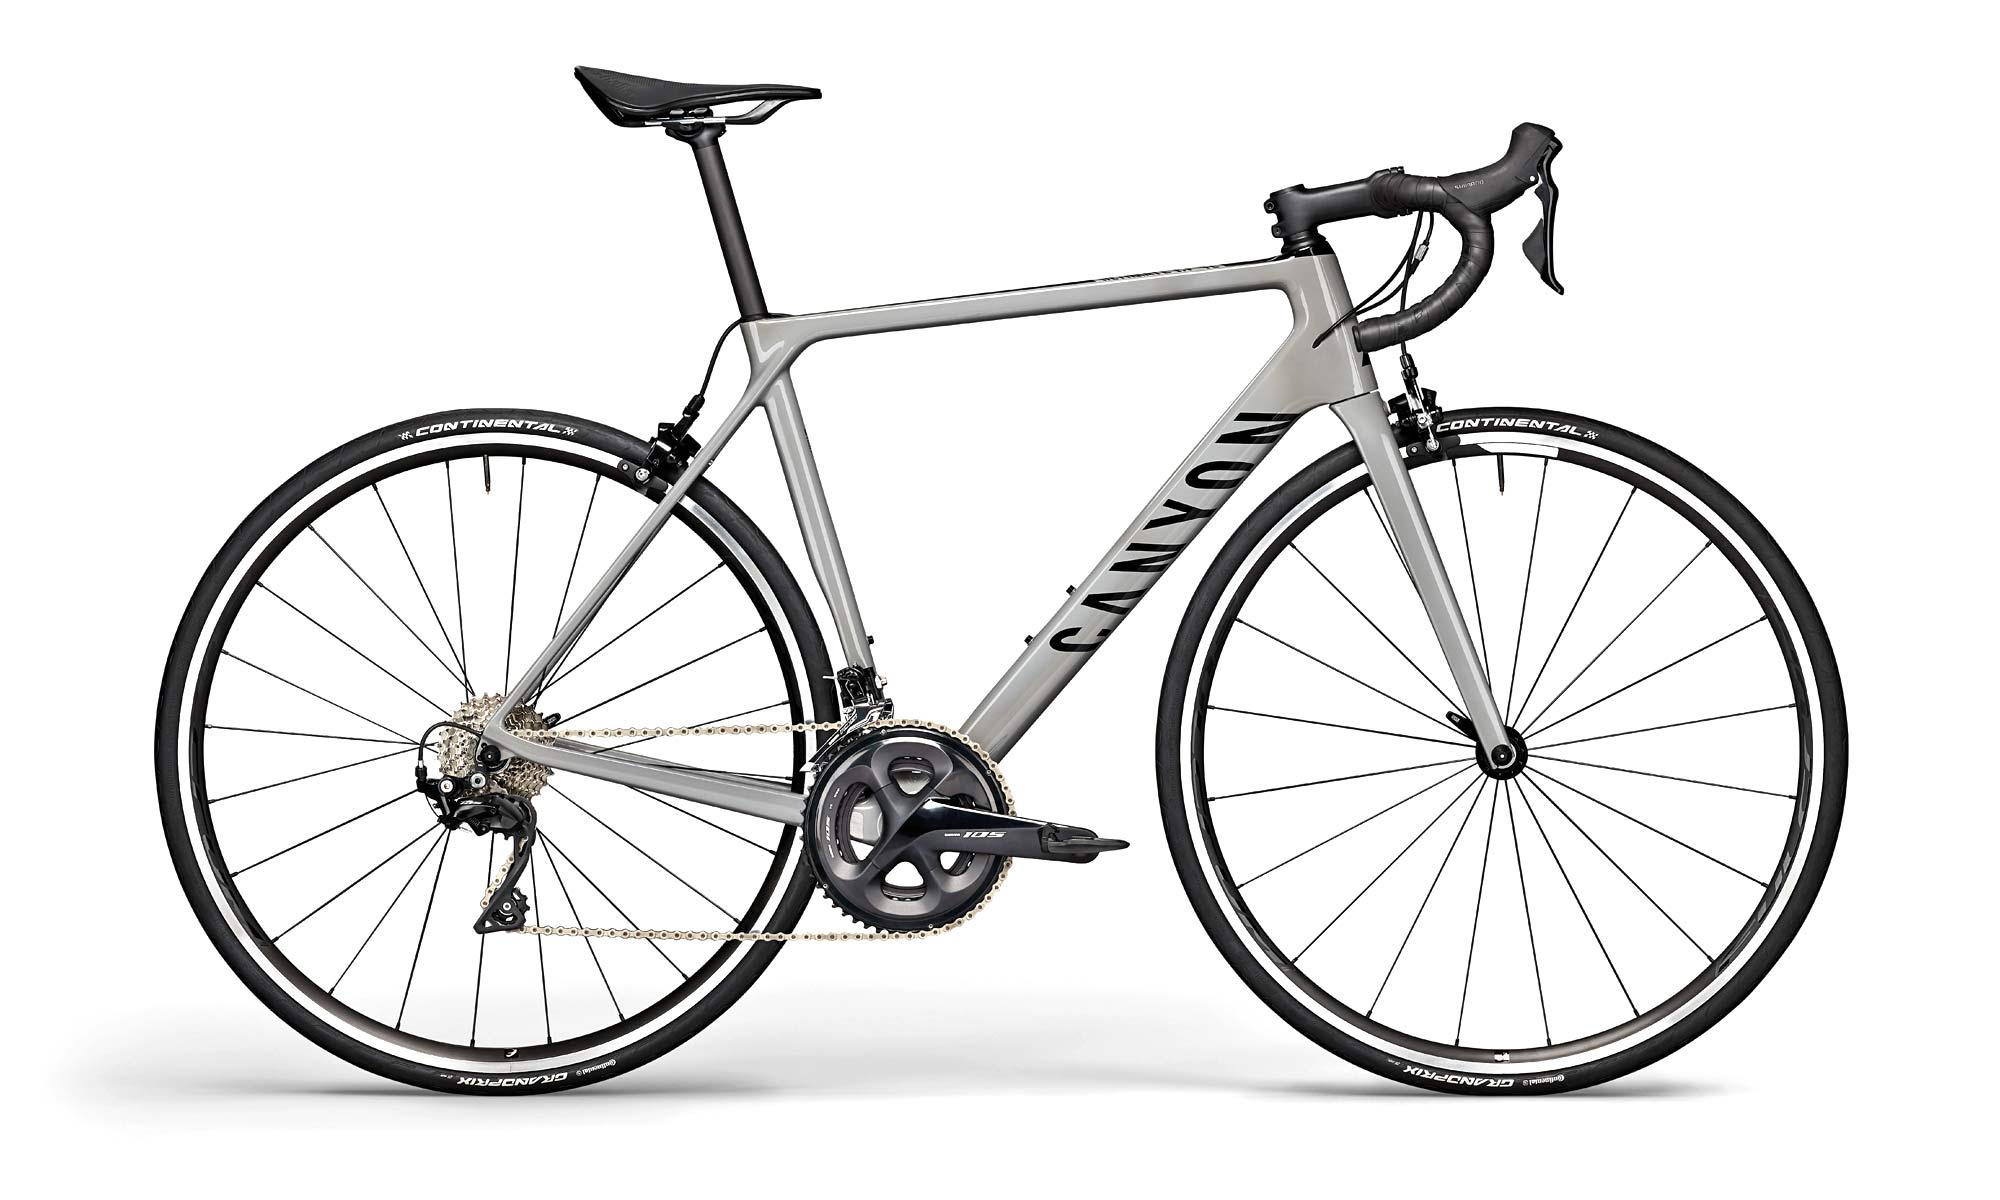 2021-Canyon-Ultimate-CF-SL-rim-brake-road-bikes_cf-sl-7.jpg